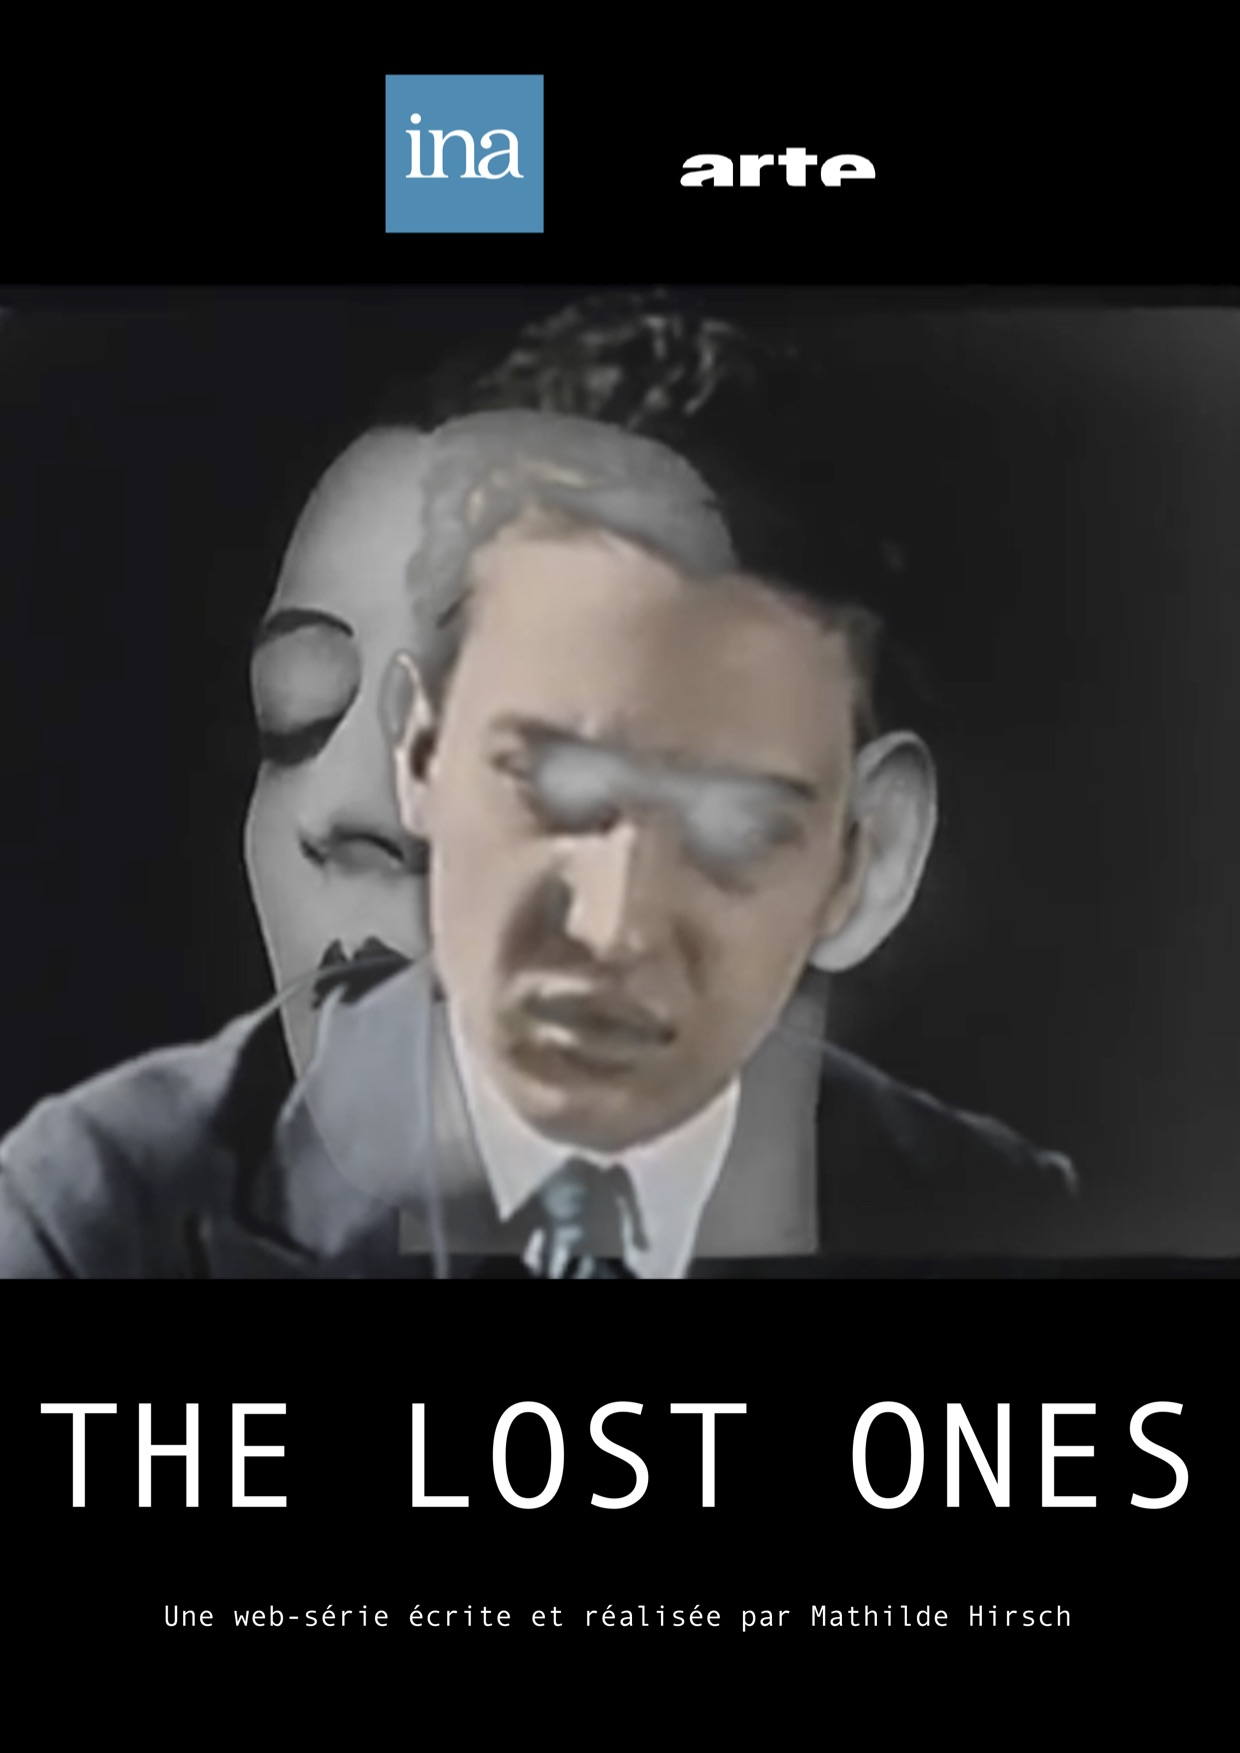 THE LOST ONES visuel DEF.jpg